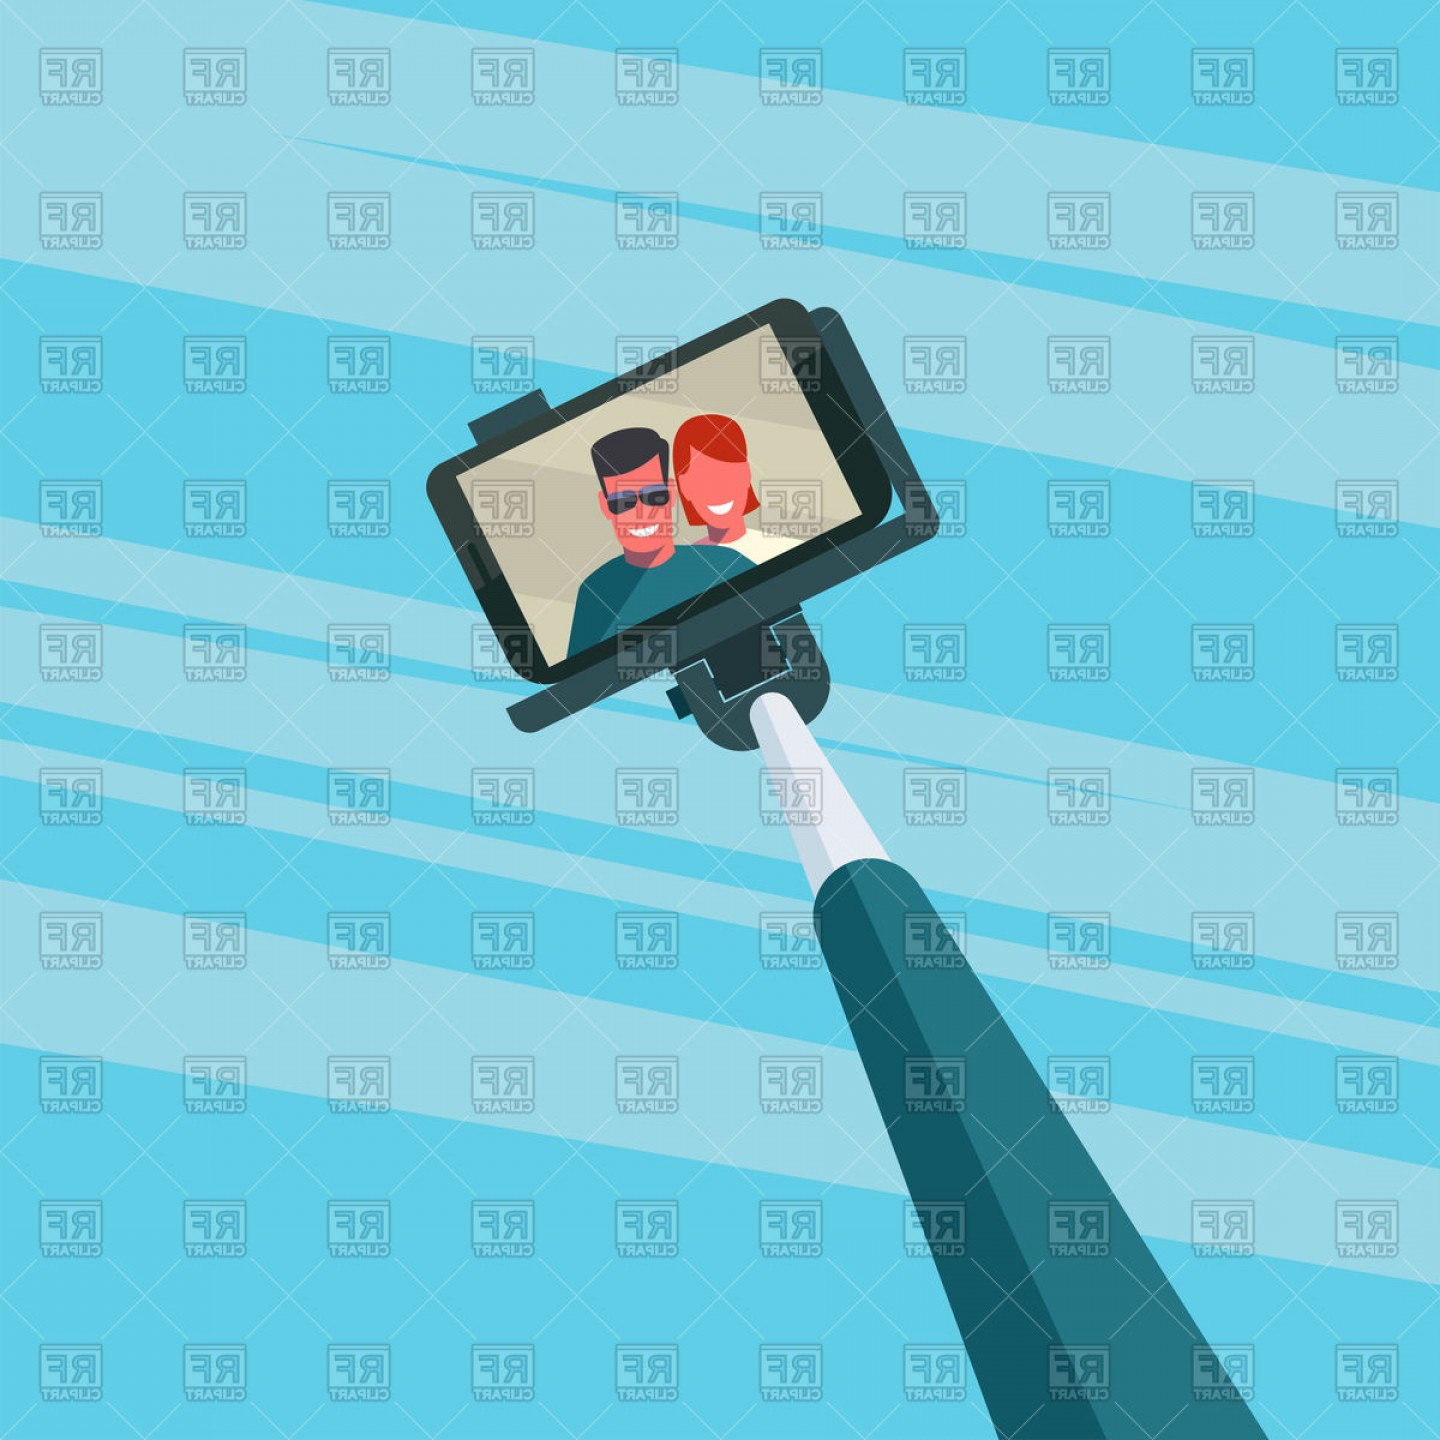 Selfie stick clipart jpeg picture transparent stock Portrait Of Smiling Young Couple On Smartphone Selfie Stick ... picture transparent stock